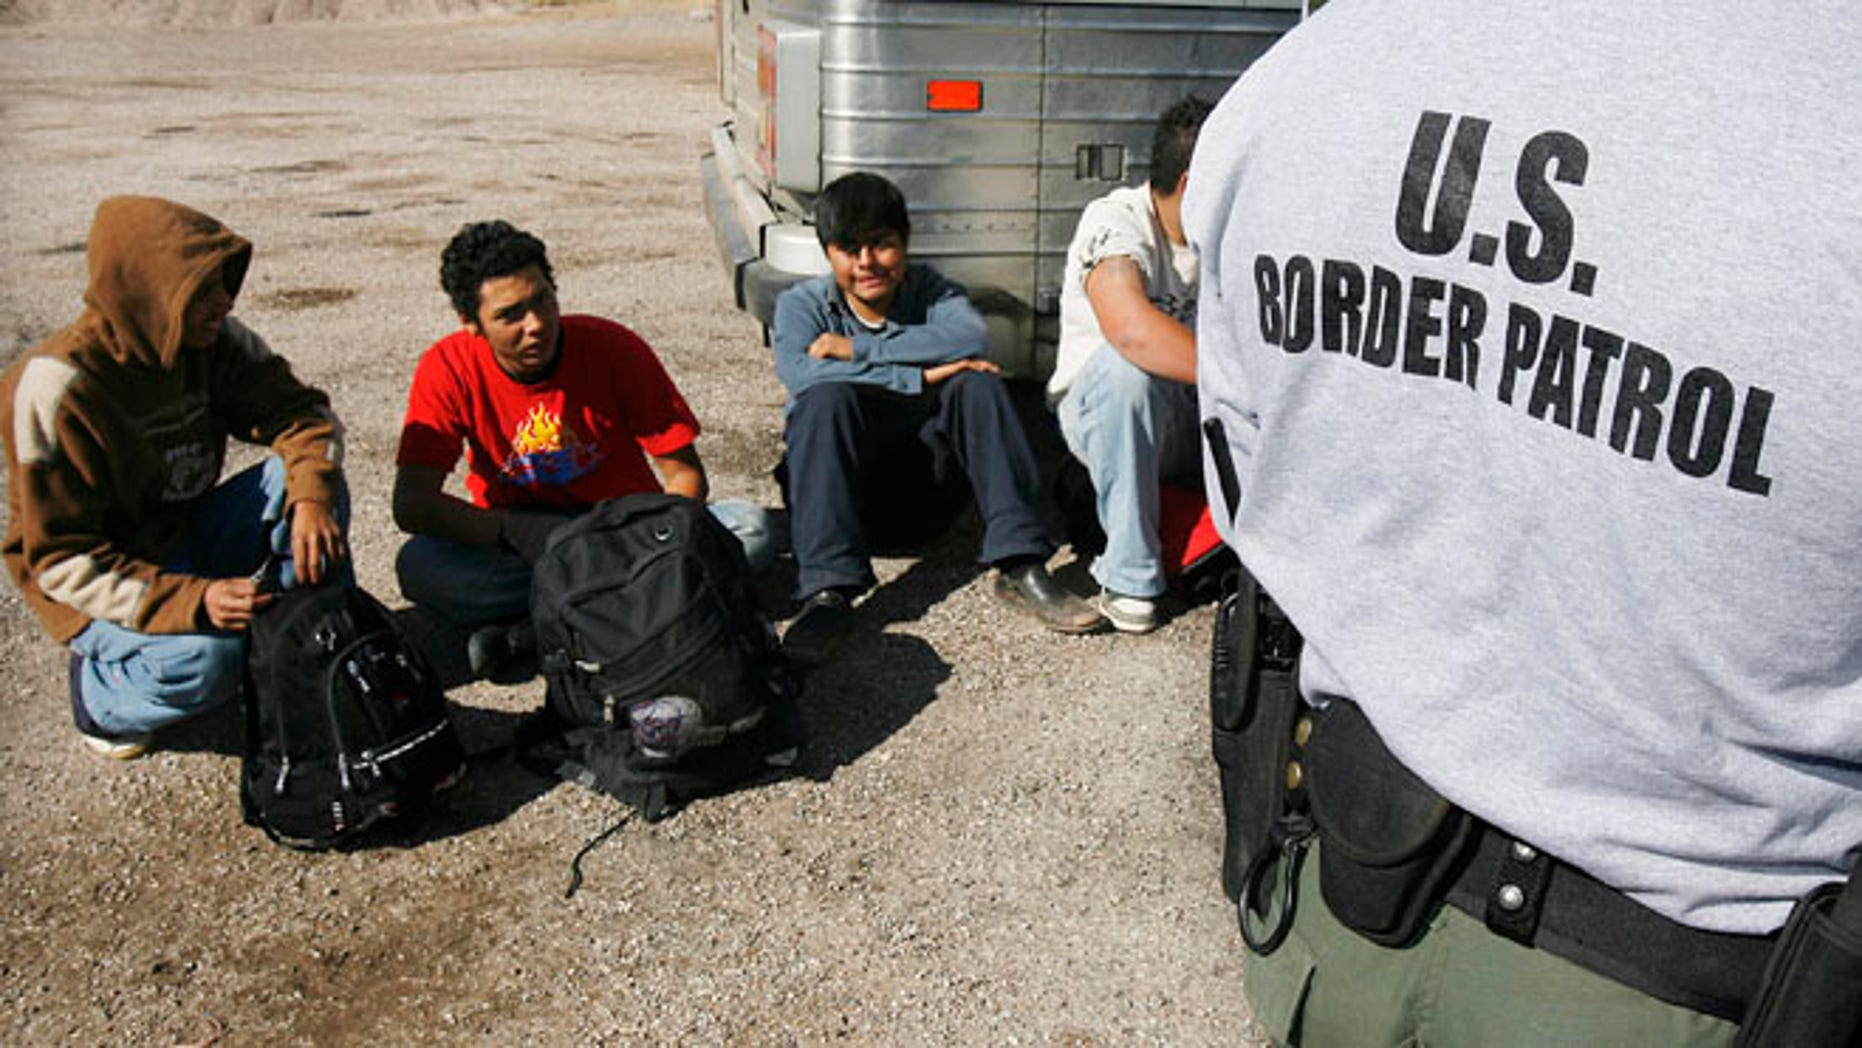 Jan. 19, 2007 file photo, the U.S. Border Patrol detains a large group of suspected immigrants at the Arizona-Mexico border in Sasabe, Ariz.